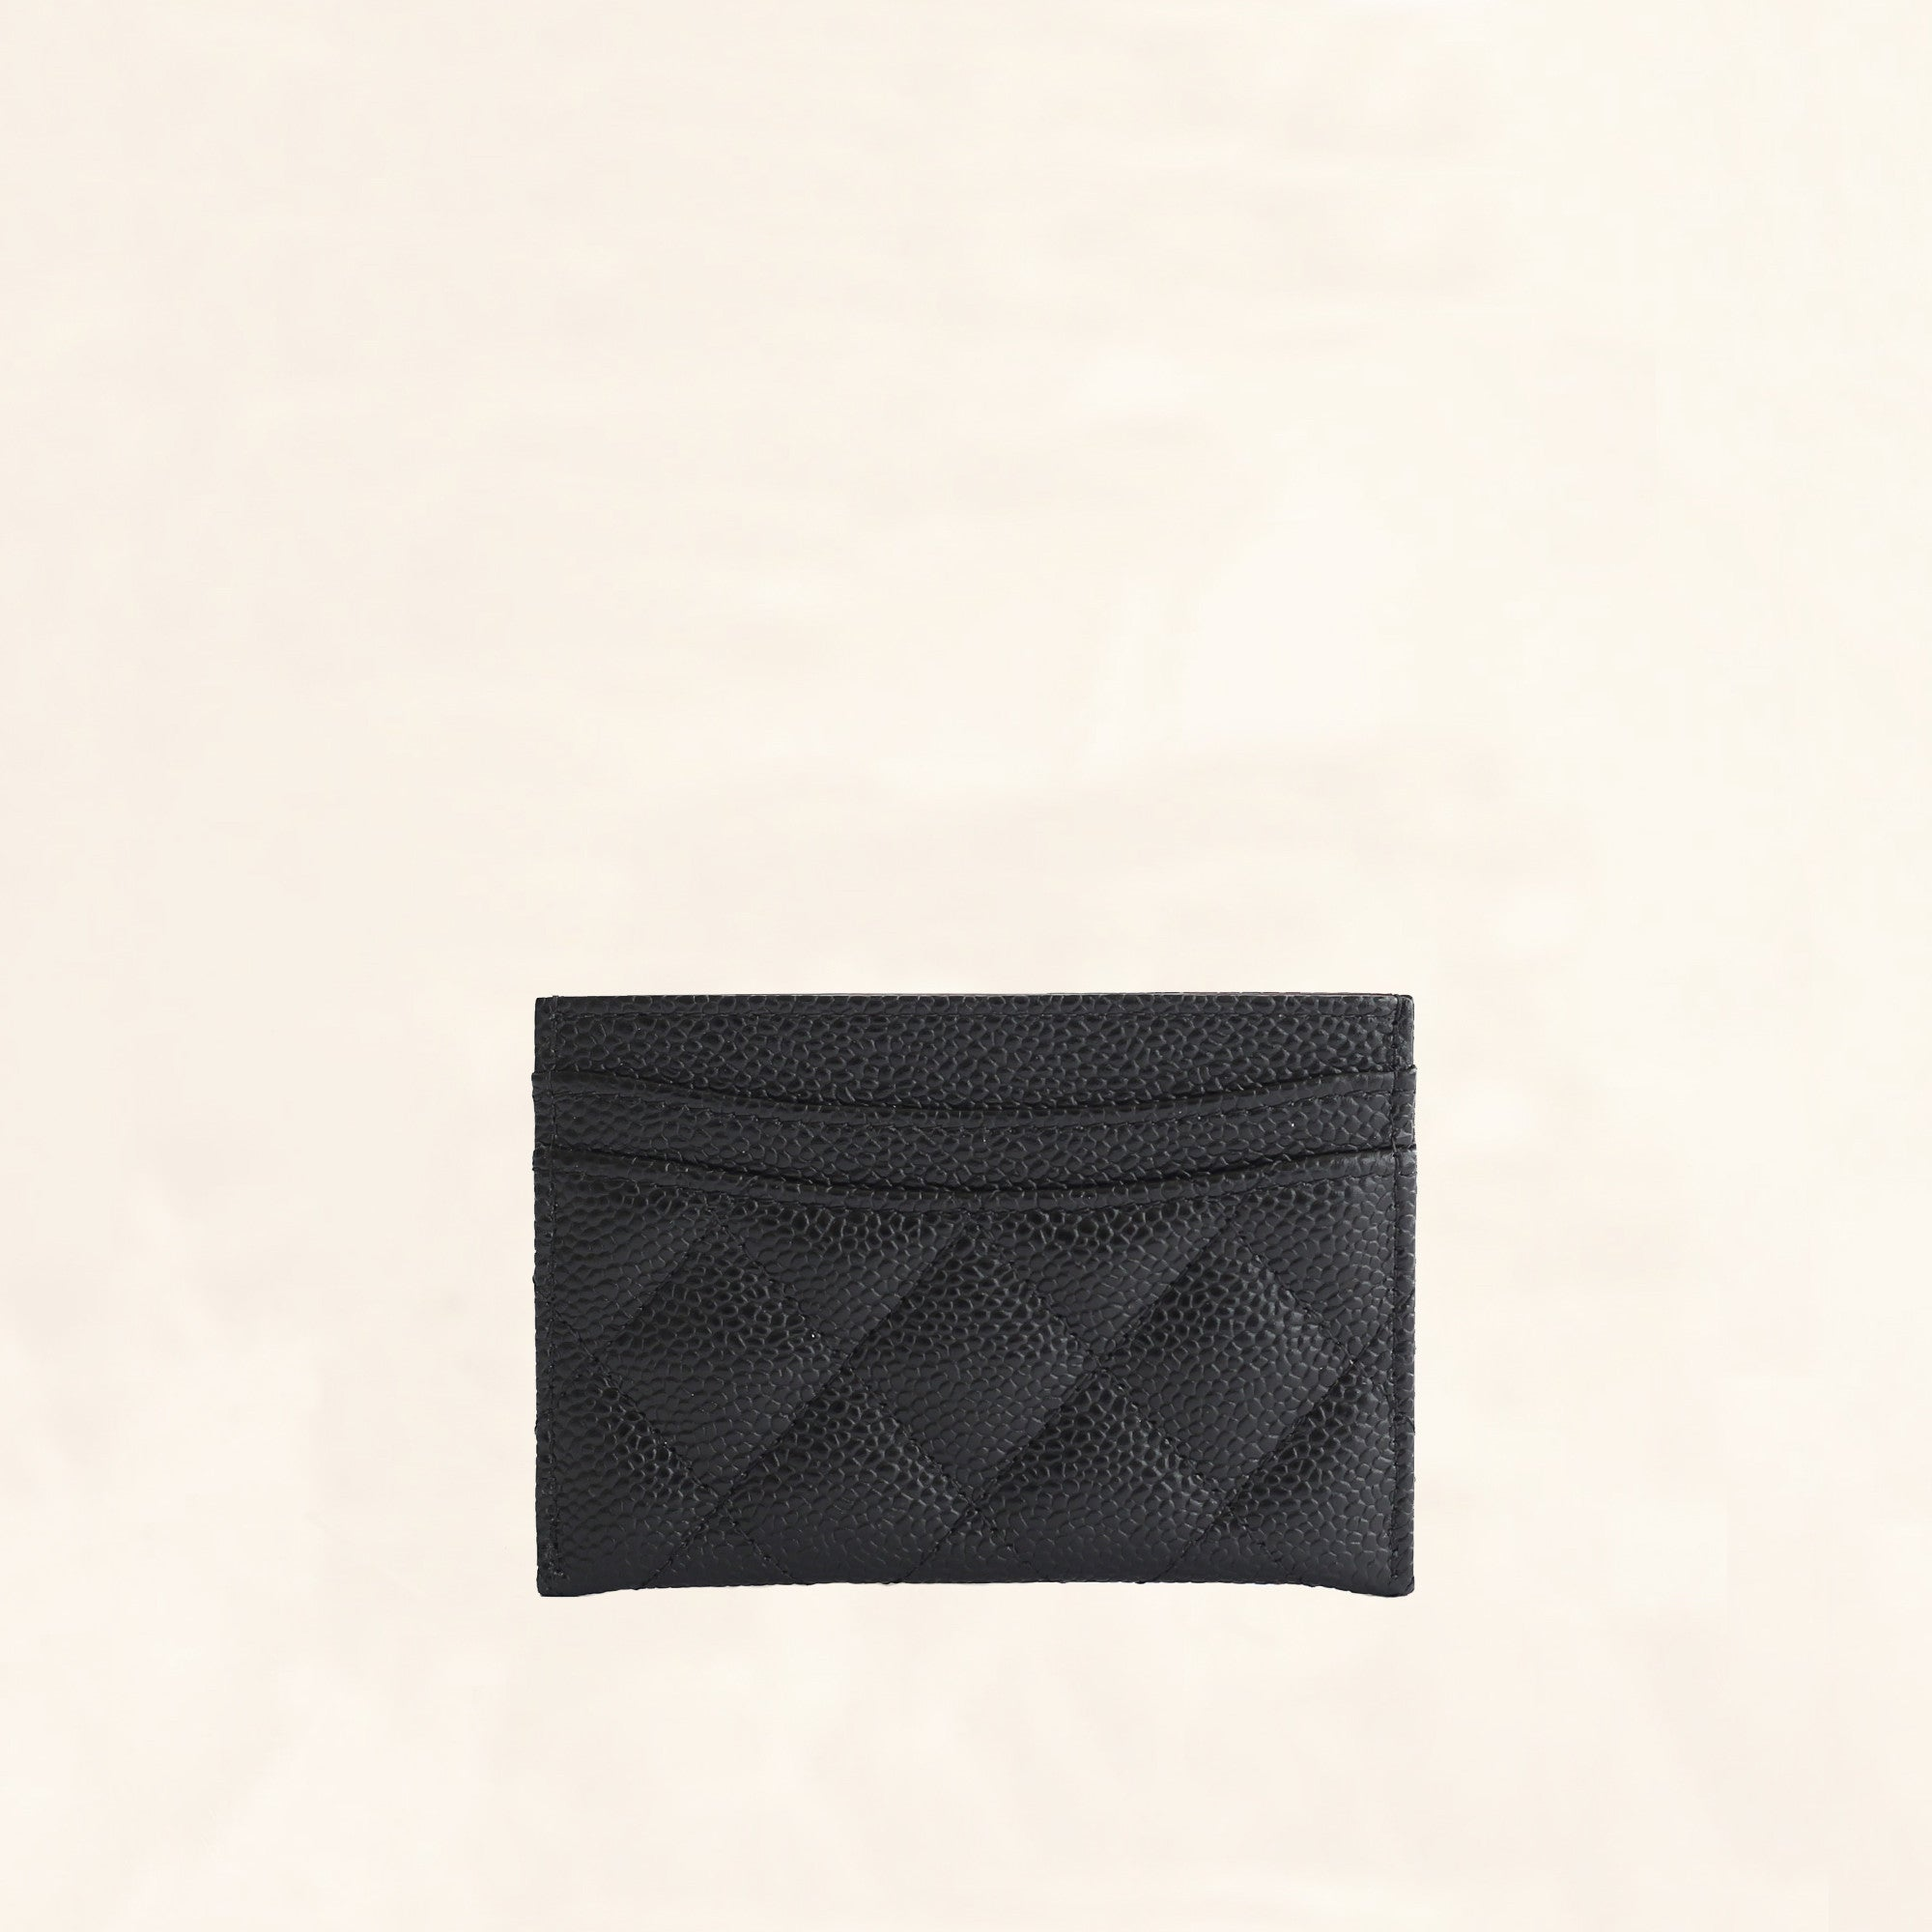 Caviar Card Holder with SHW | One Size - The-Collectory